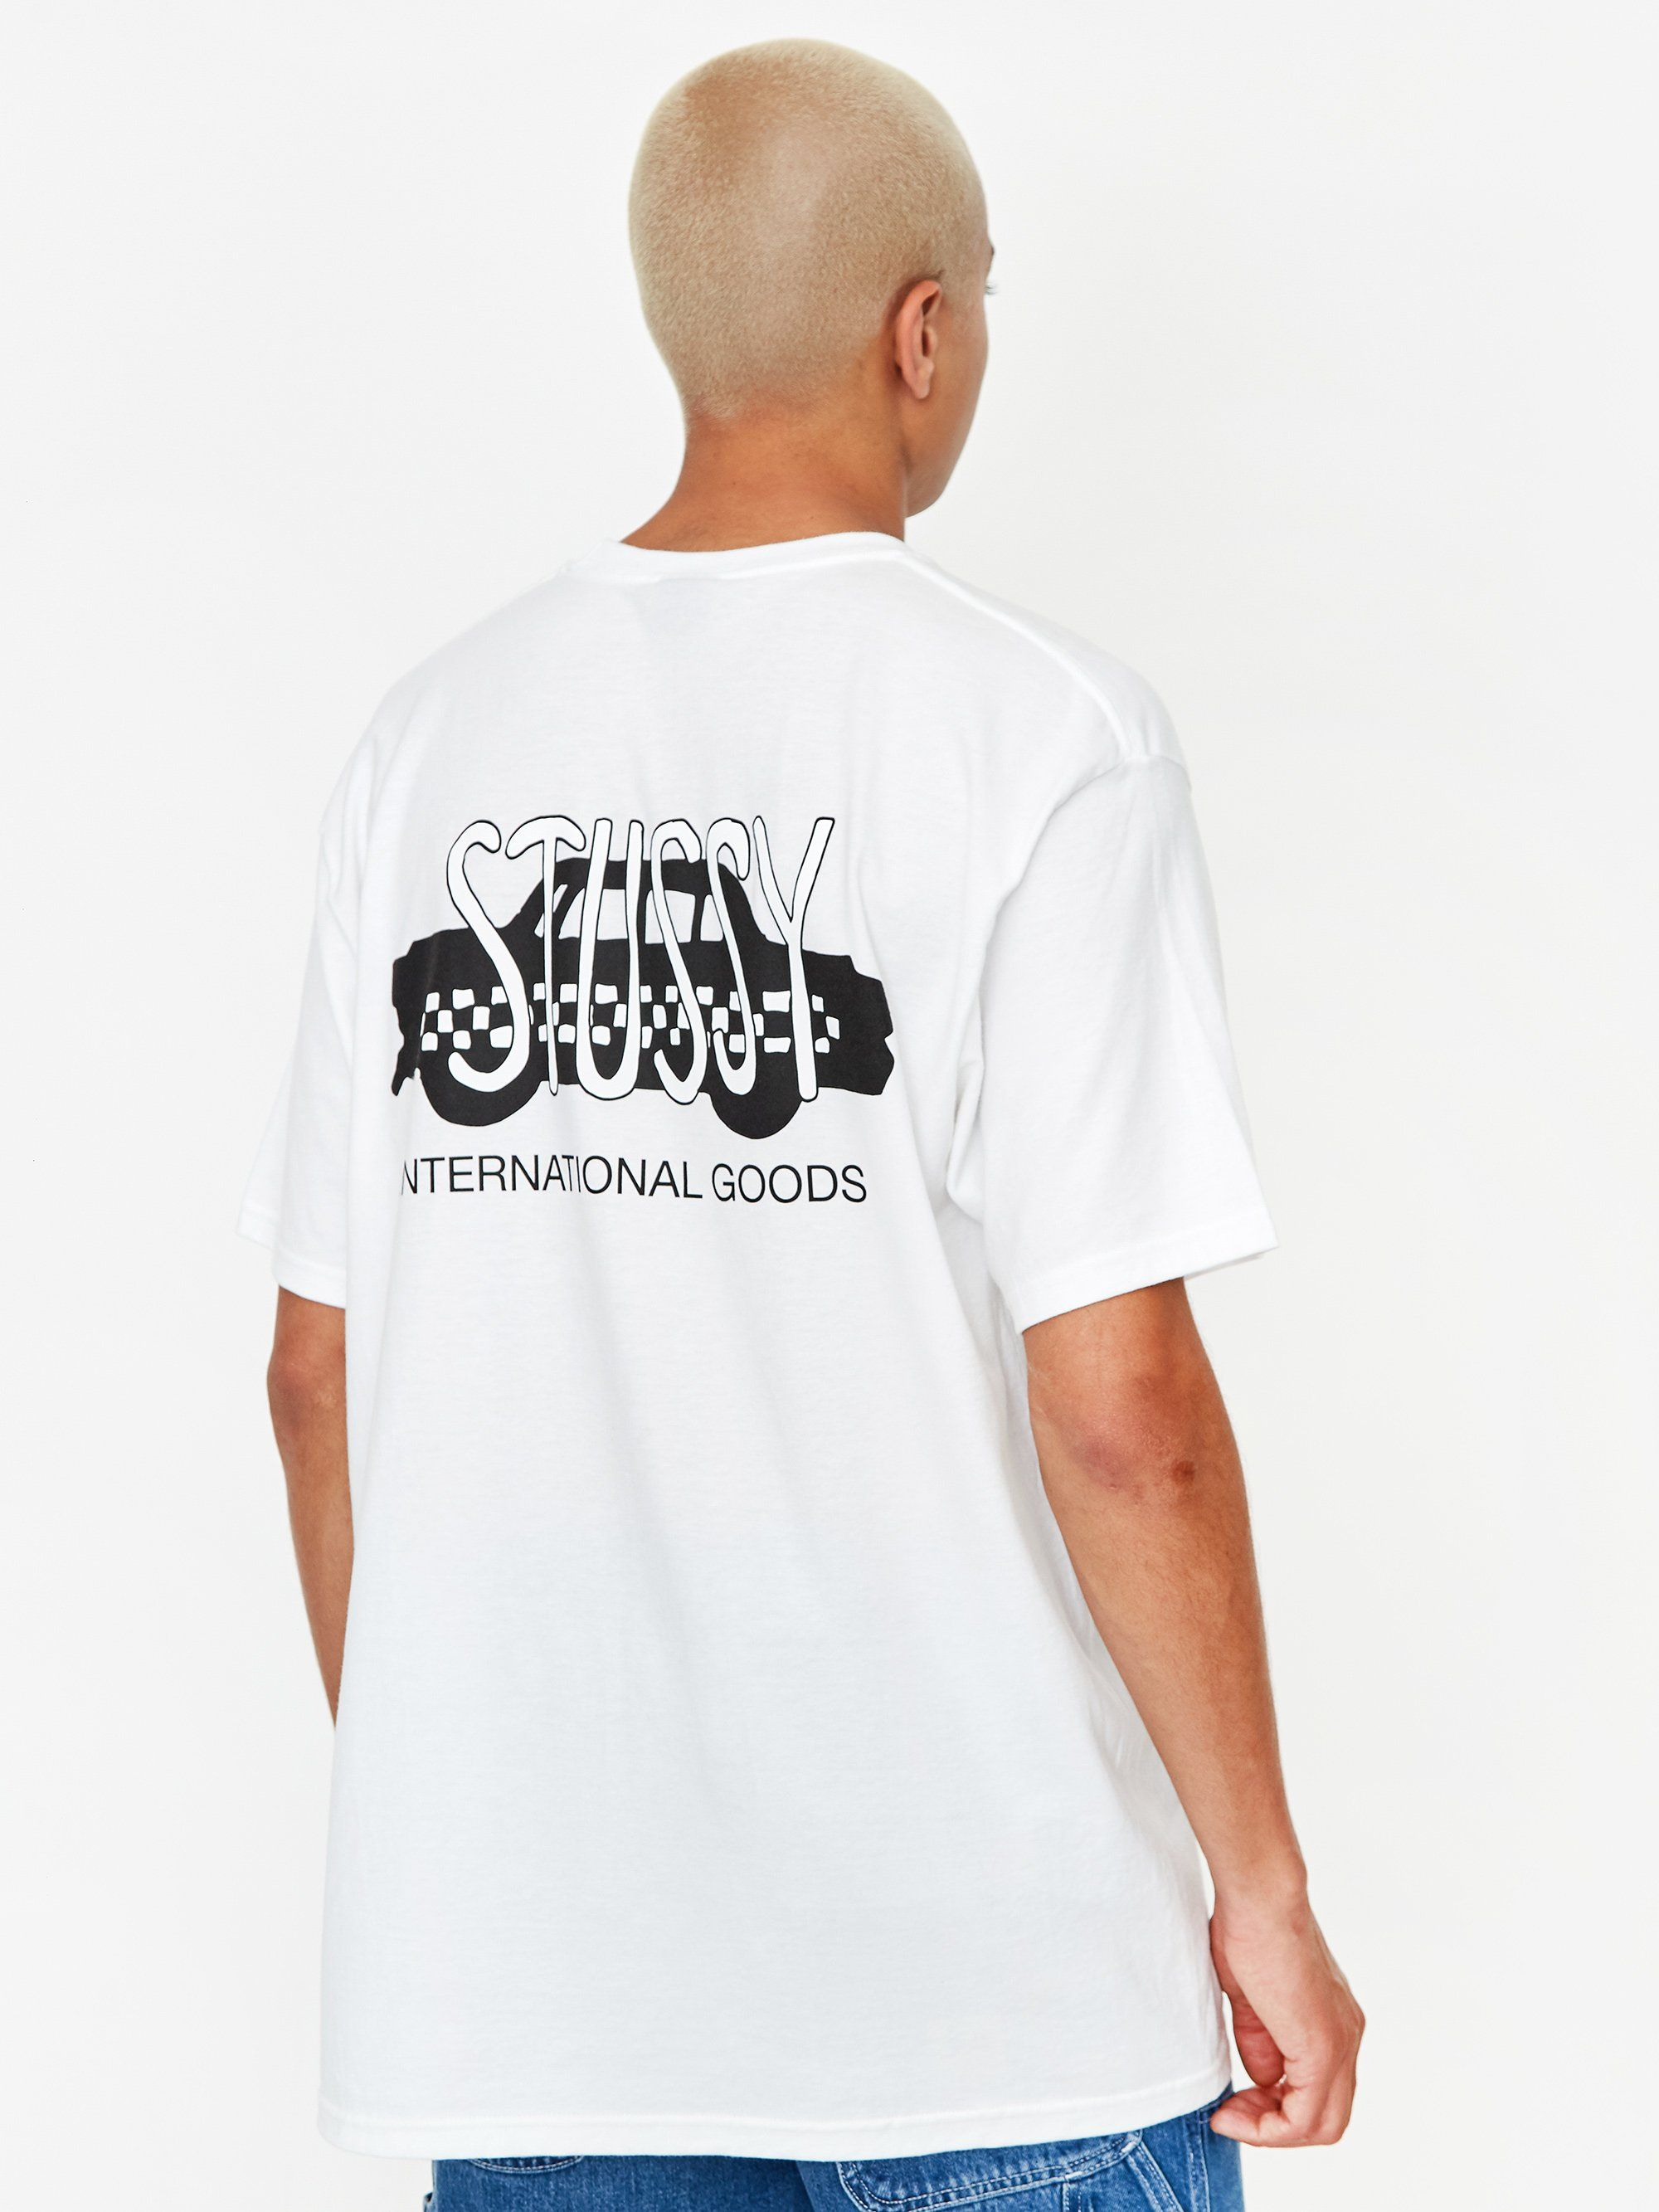 Stussy Taxi Cab Shortsleeve T-Shirt - White in 2021 | White cotton t shirts,  T shirt, Shirts white